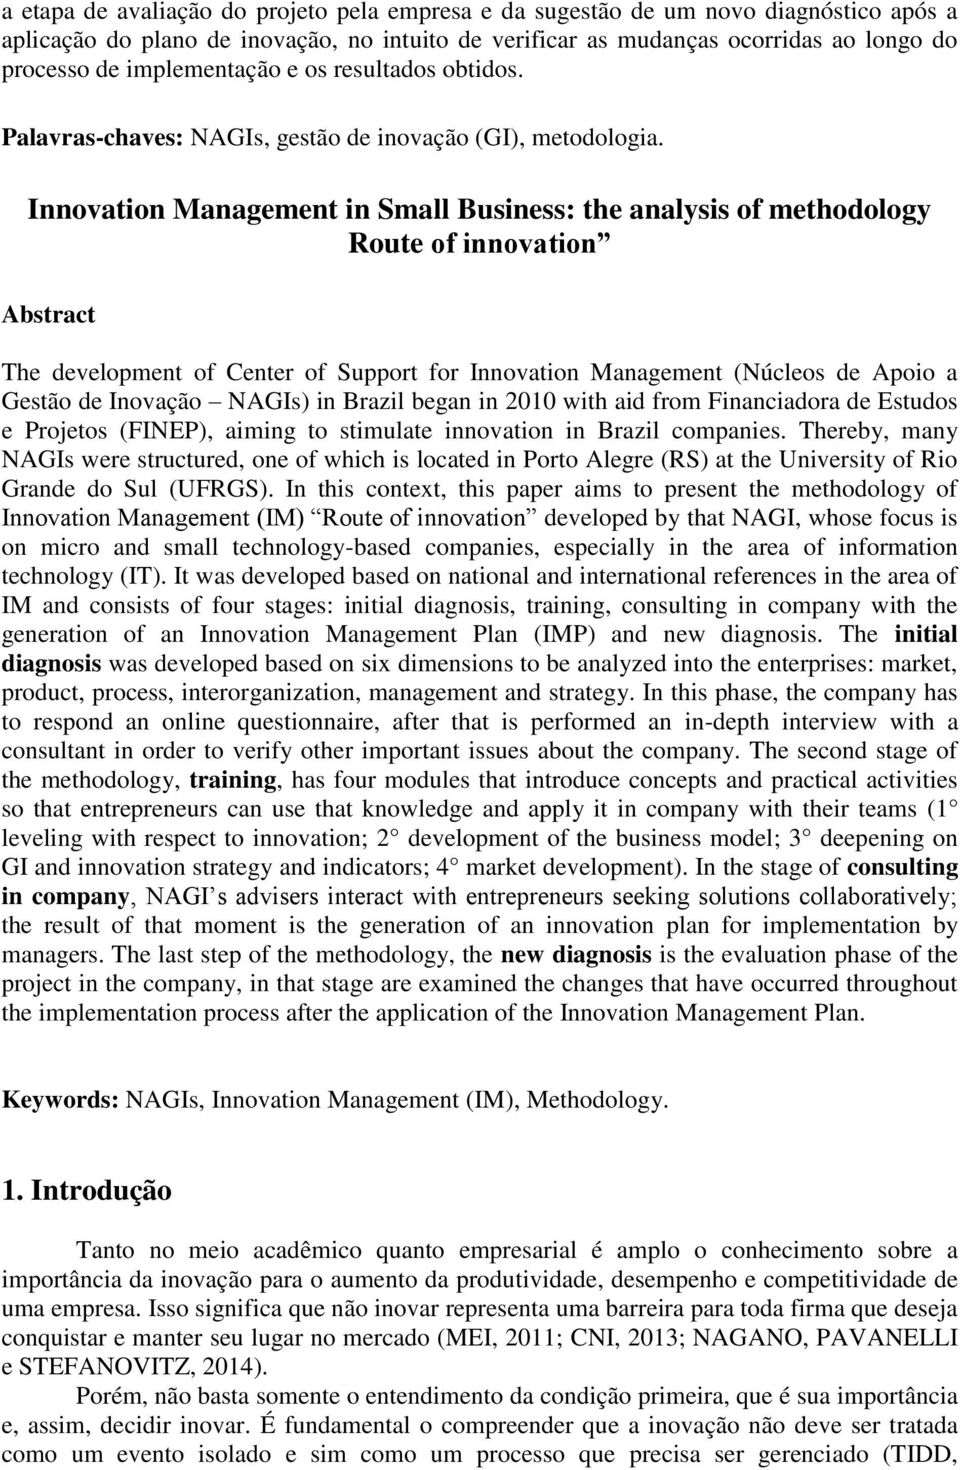 Innovation Management in Small Business: the analysis of methodology Route of innovation Abstract The development of Center of Support for Innovation Management (Núcleos de Apoio a Gestão de Inovação